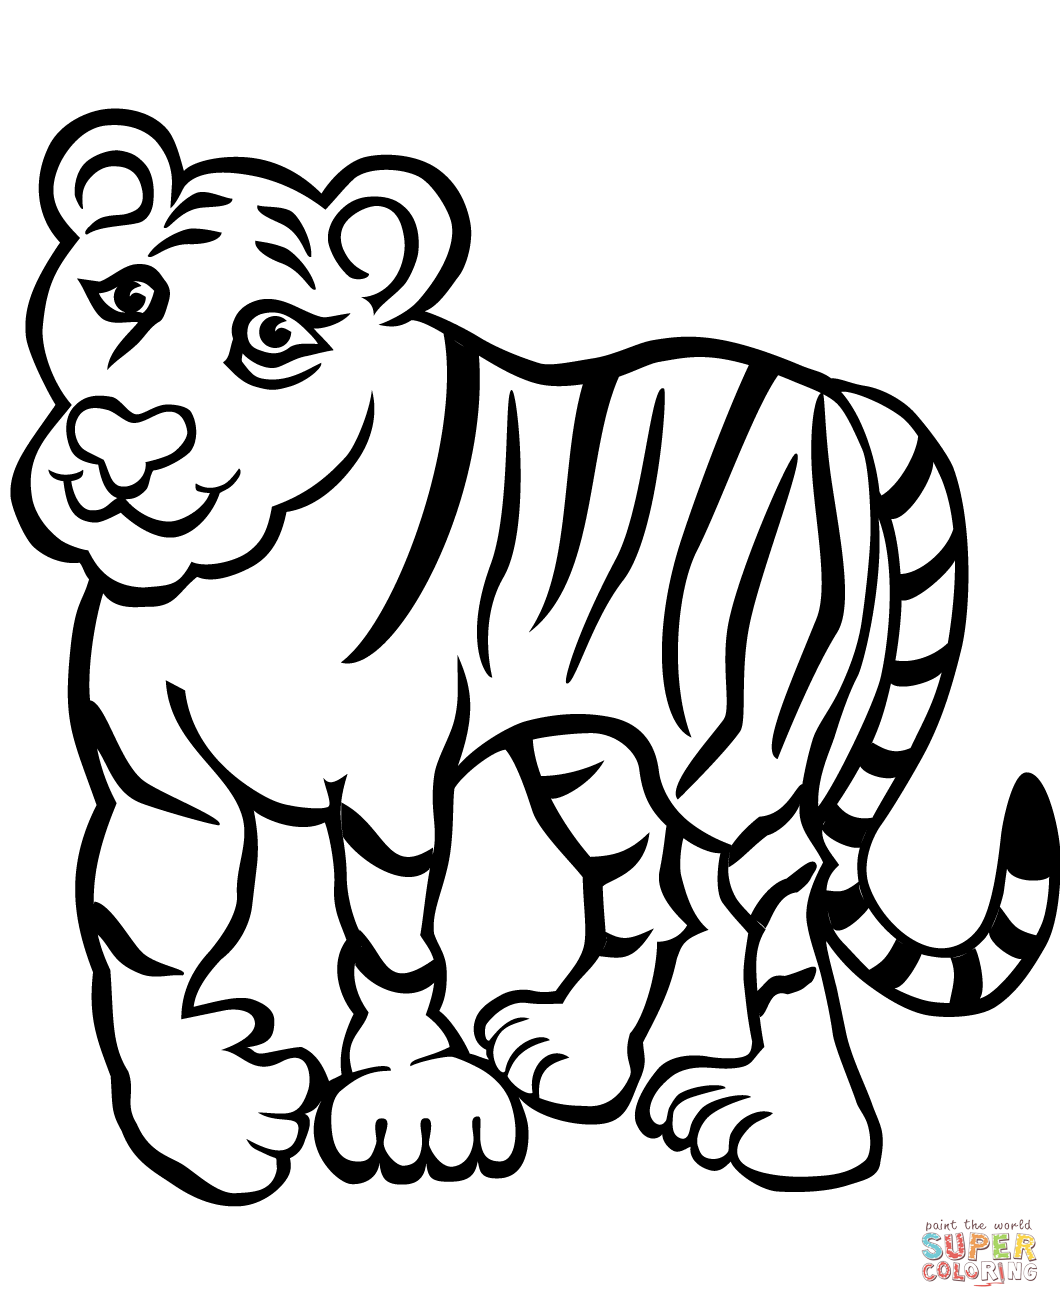 tiger coloring book pages sad tiger coloring page free printable coloring pages coloring book tiger pages